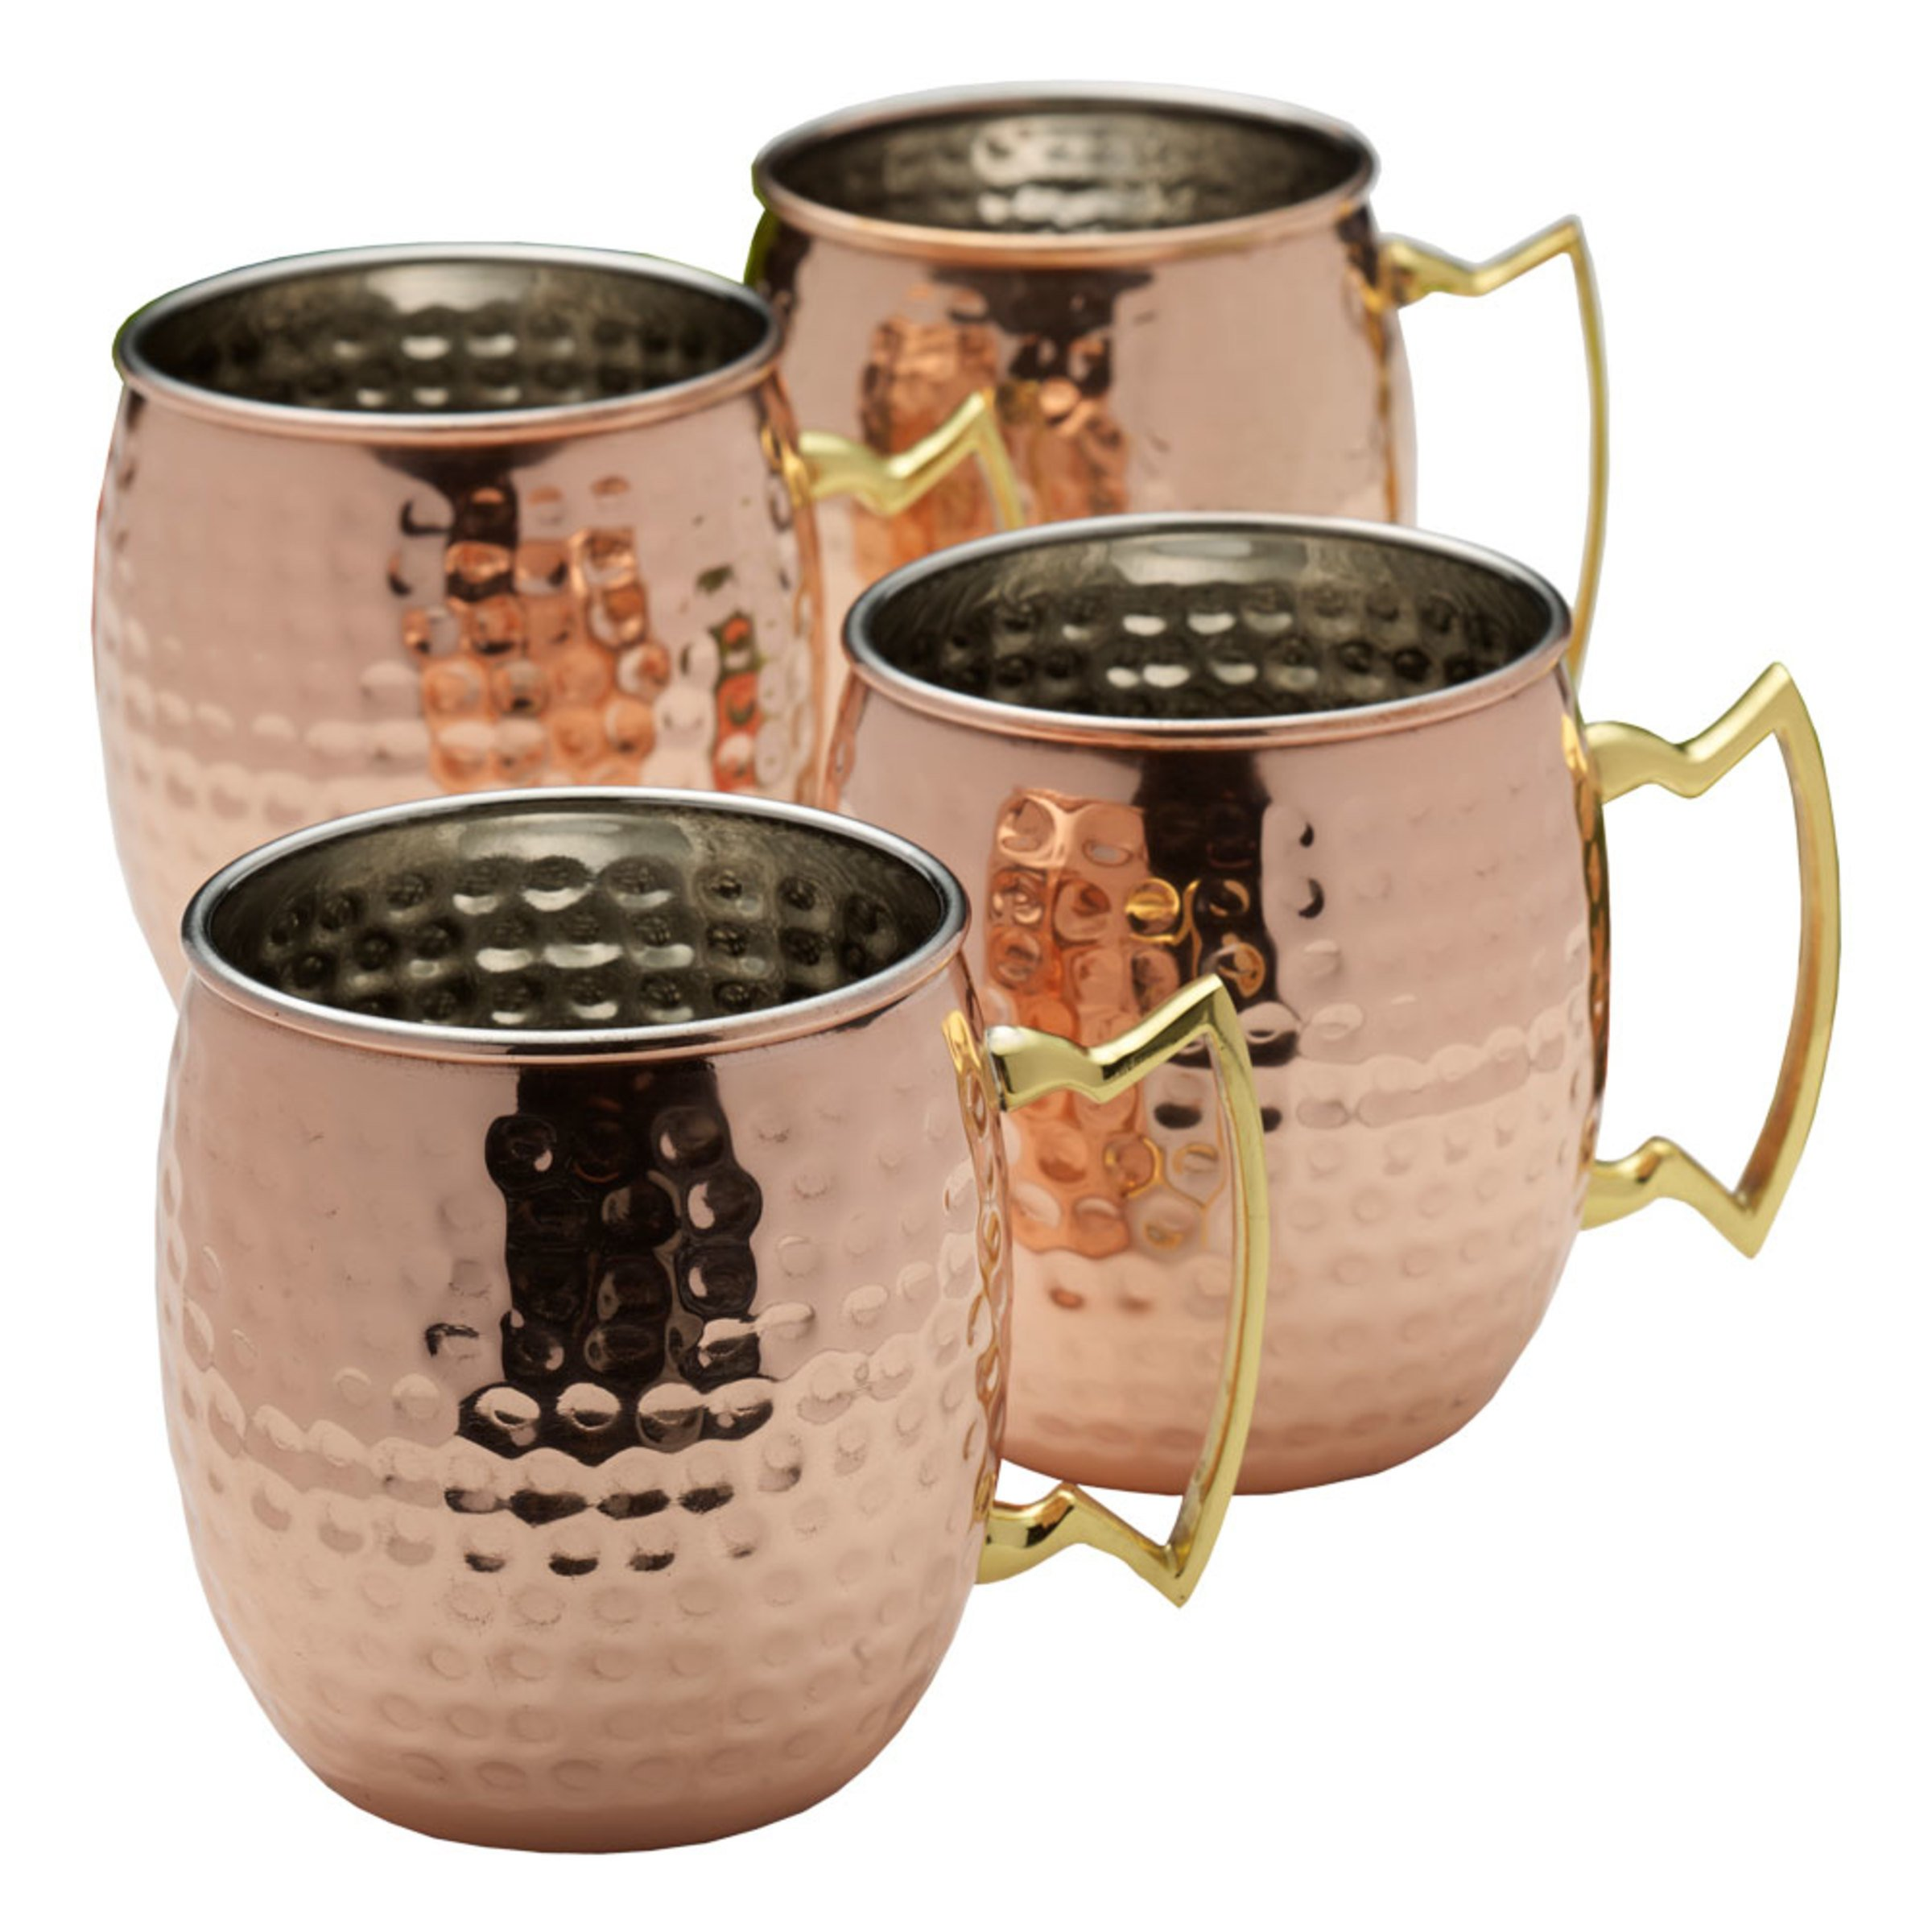 Mikasa 5212854 Hammered Moscow Mule Mugs 16 oz Copper